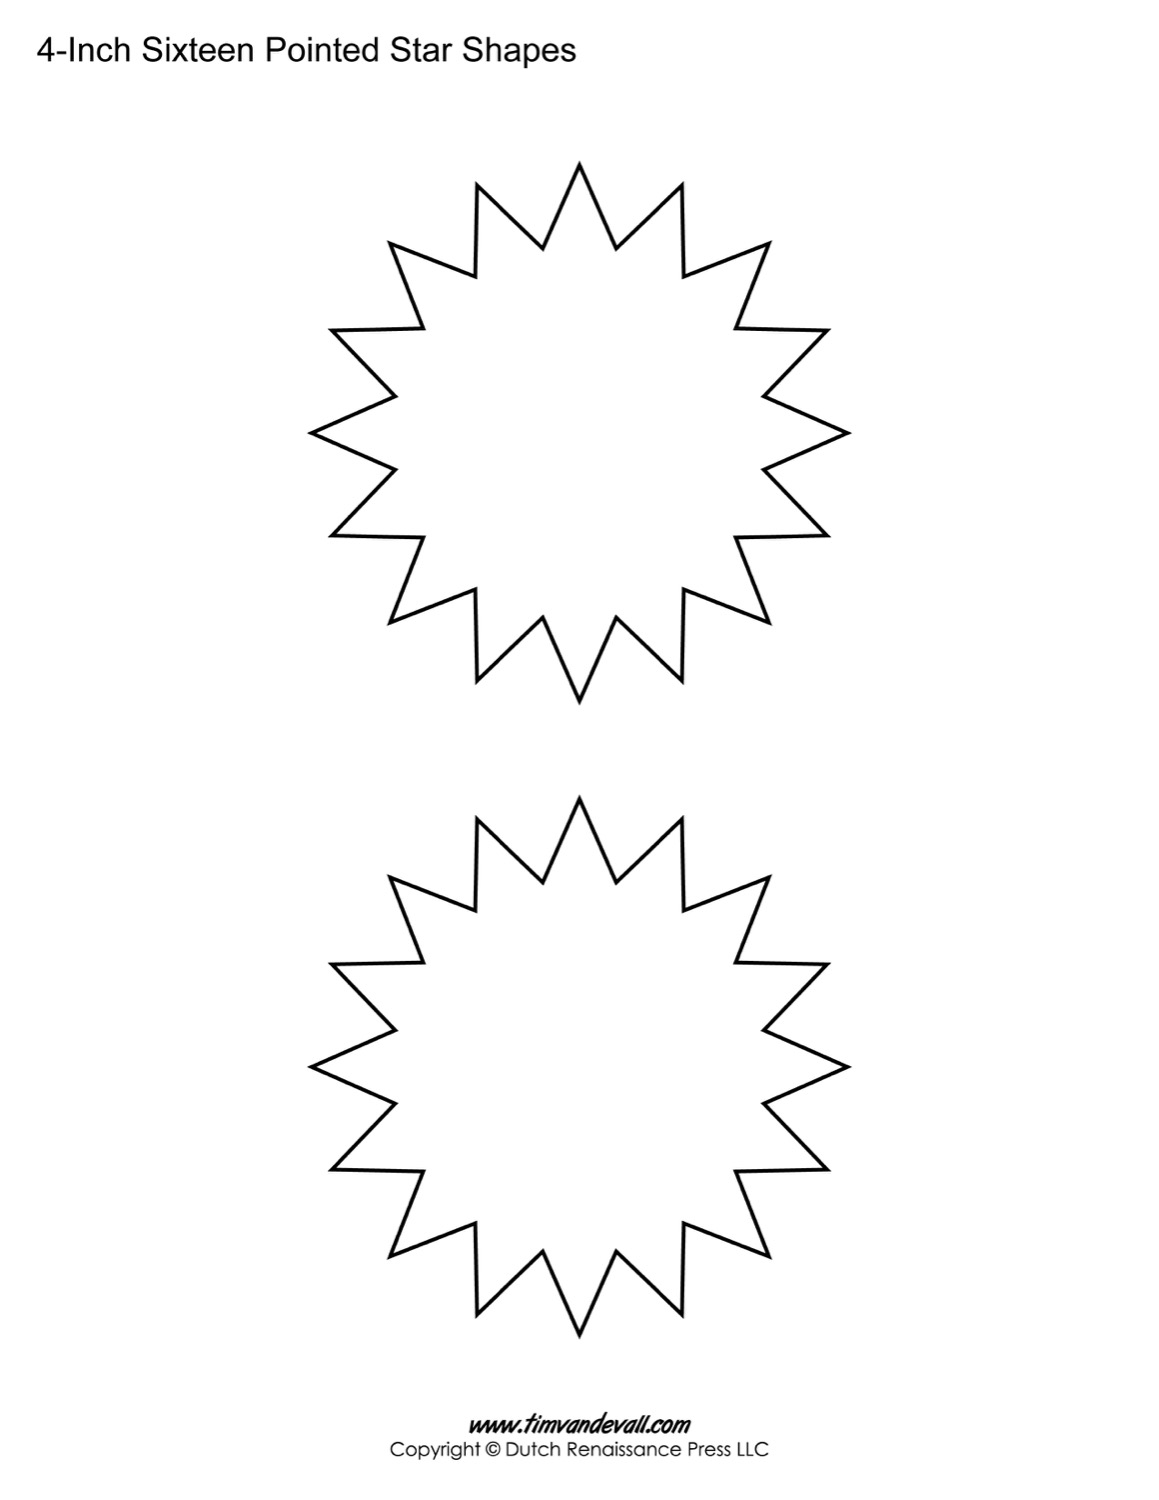 Printable Sixteen Pointed Stars for Decorations & Art Crafts